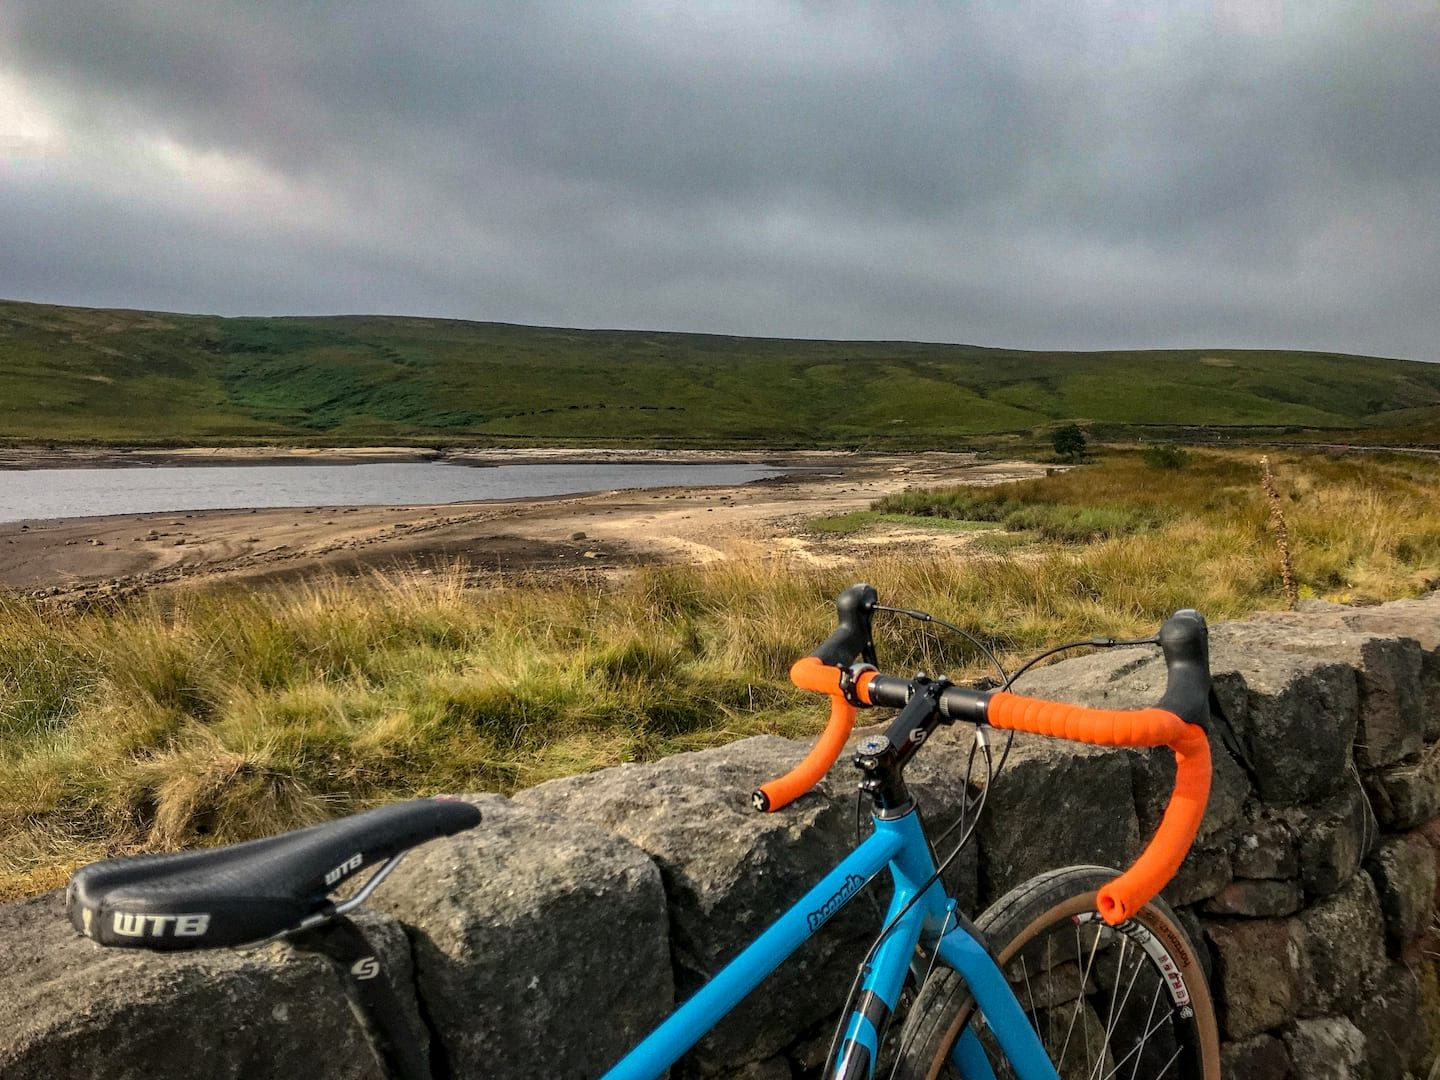 Commute Calderdale Reservoir Climate Change daily exercise